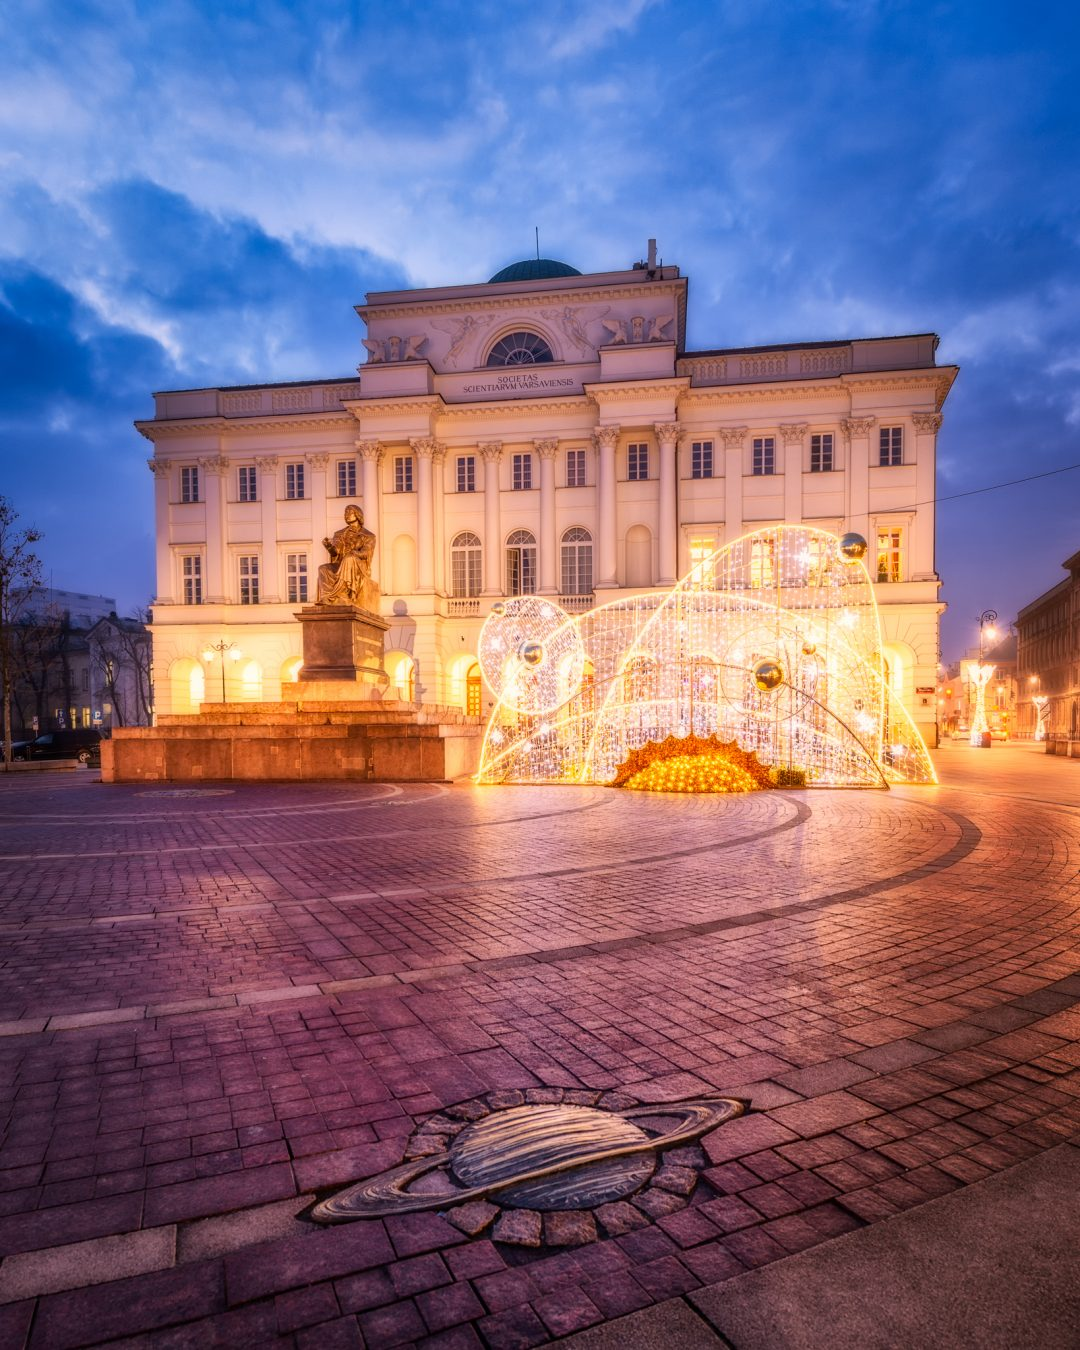 Nicolaus Copernicus Monument in Warsaw, Poland in a special Christmas edition